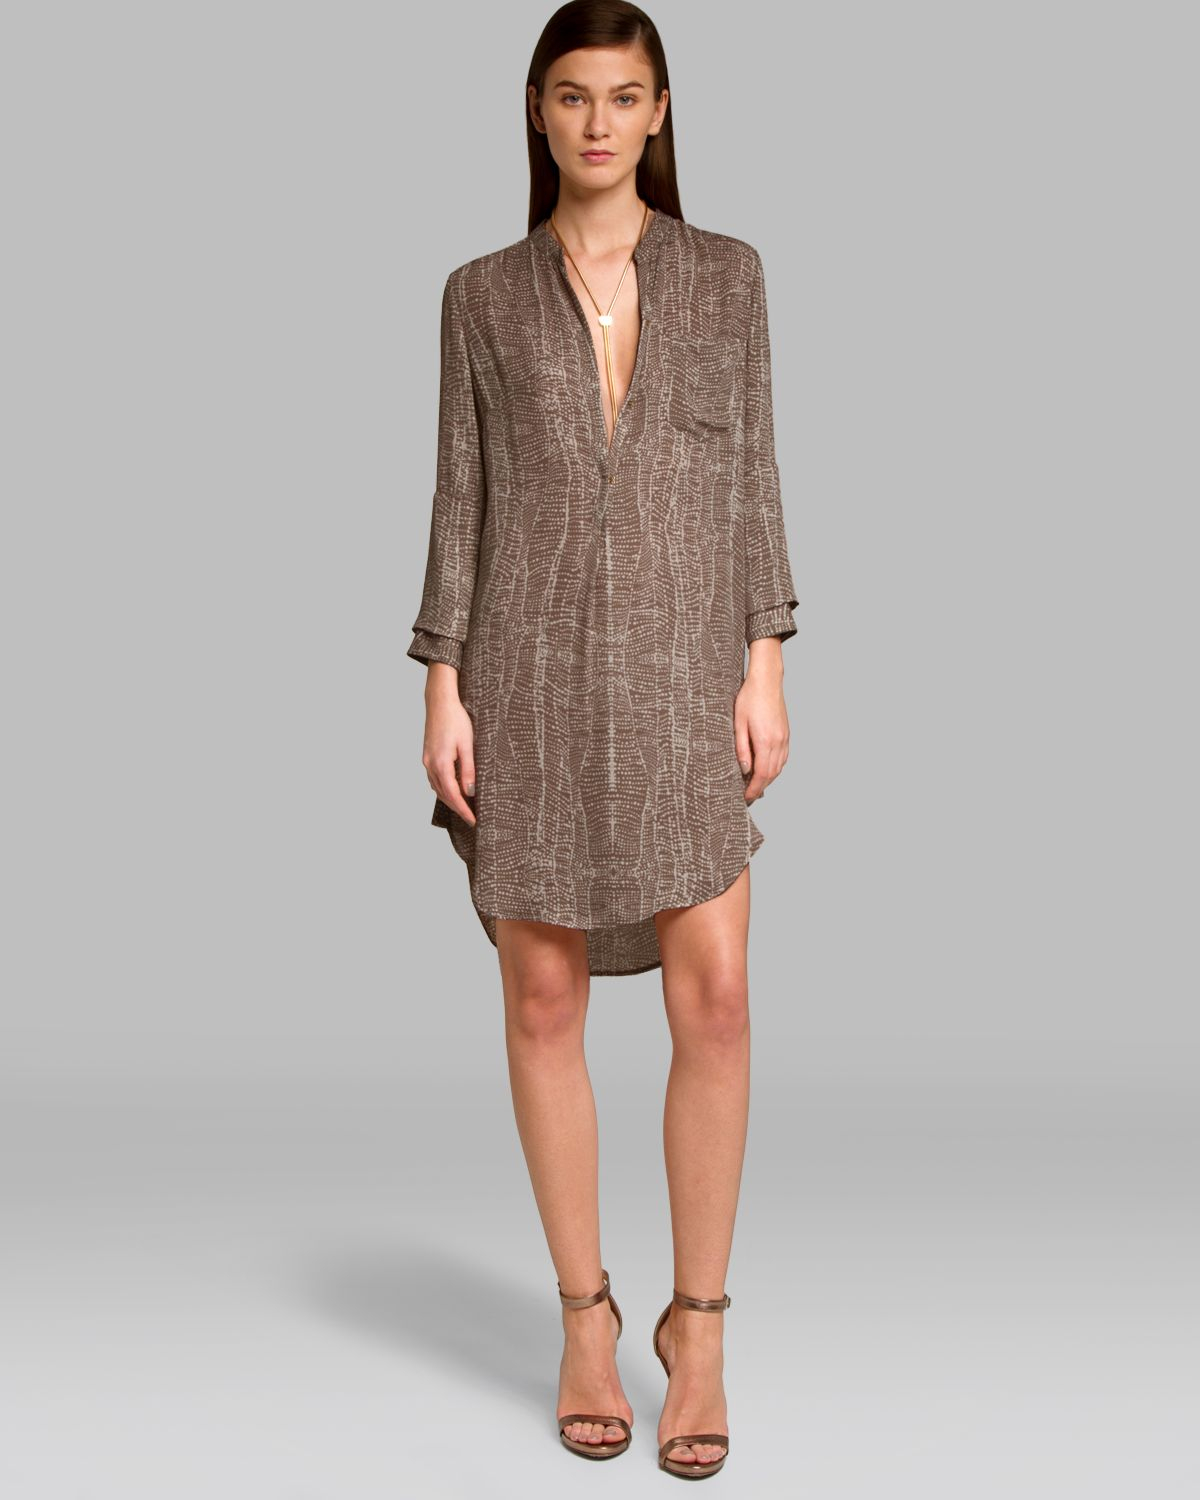 Halston dress print shirt in brown lyst for Halston heritage shirt dress